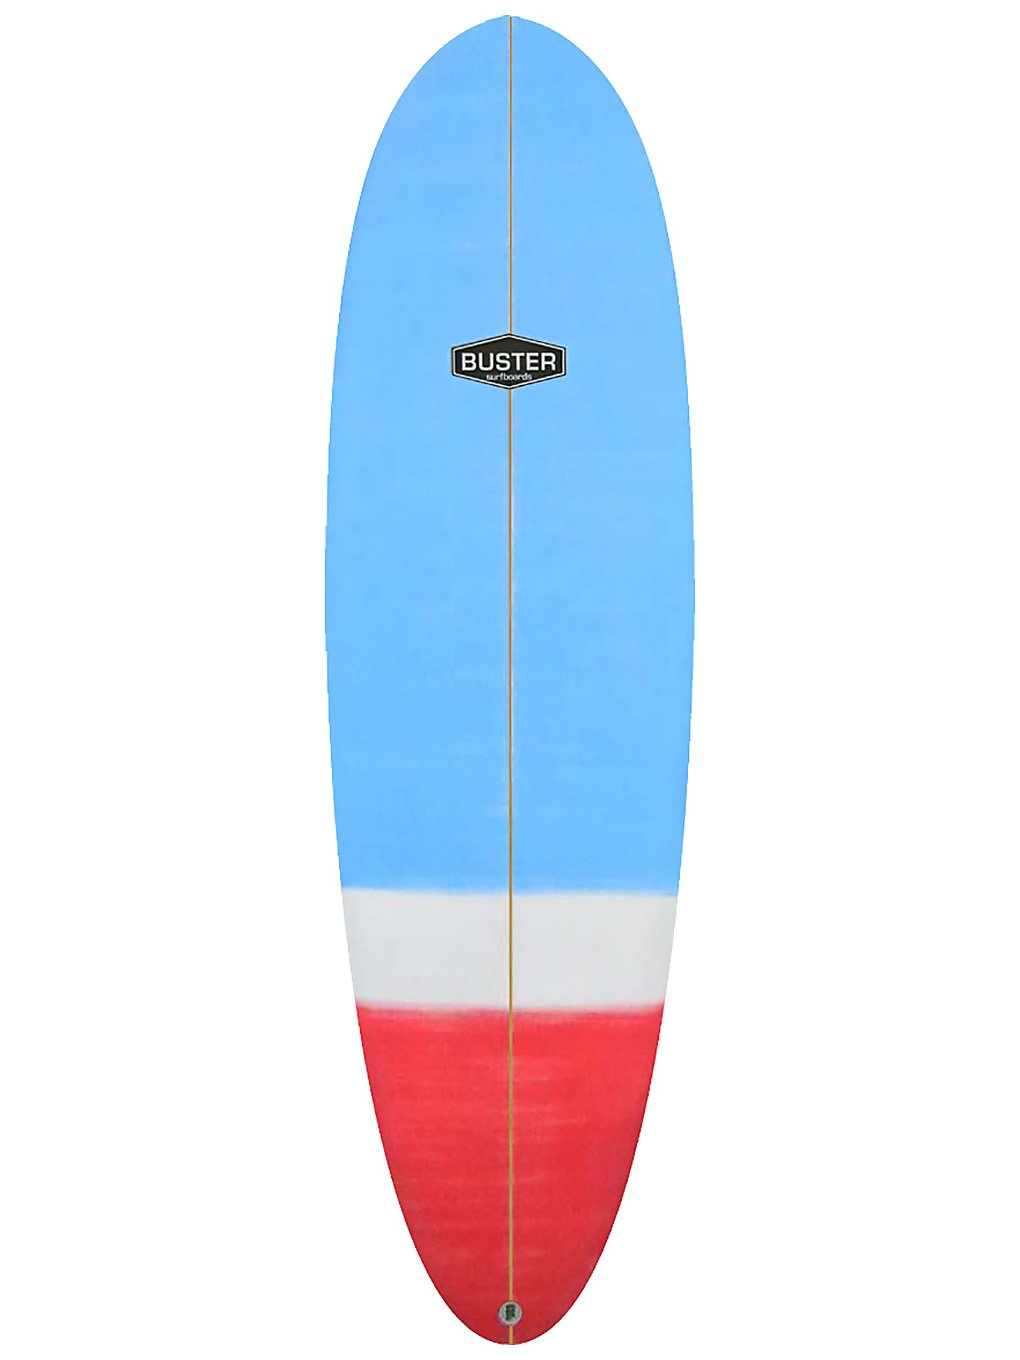 Buster 6'6 Egg Style M pink